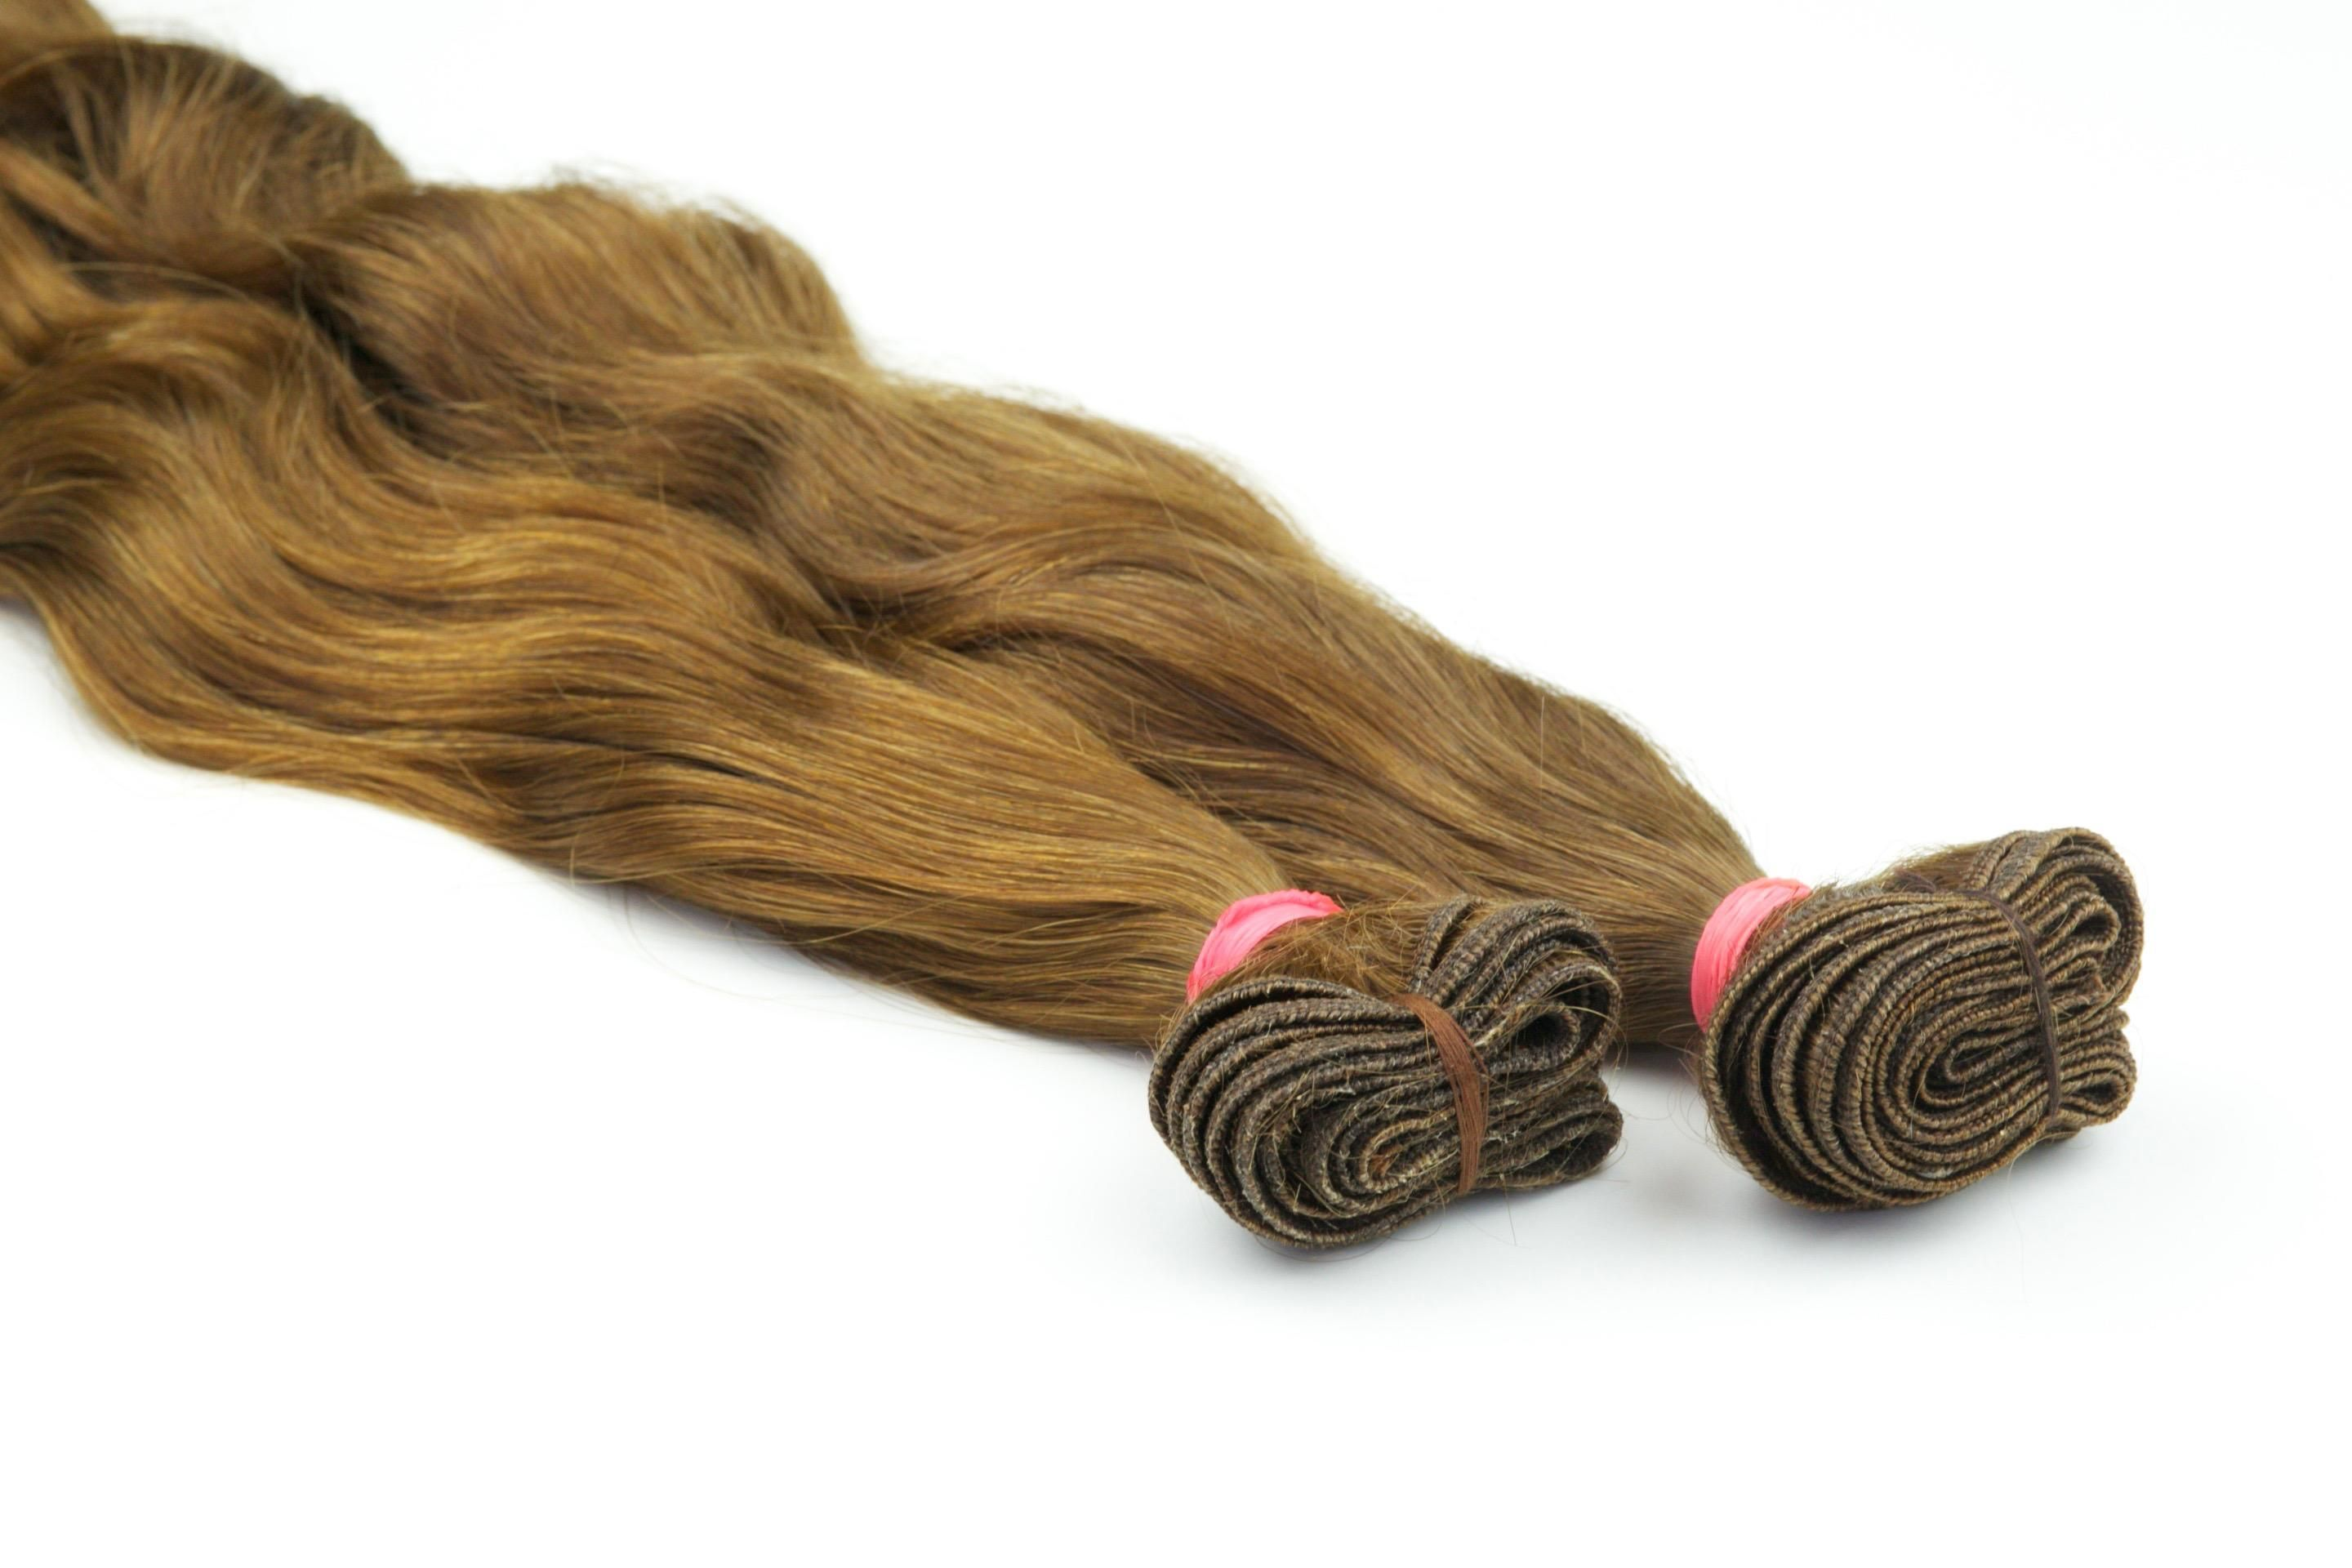 Premium10A gradeNatural wavy Virgin hair!Color - #30 (Light Auburn)Our virgin Indian hair is as close to raw hairas you will find and is off the charts! Completely natural in its state and is single donor hair straight from the source. This is the absolute best virgin hair you will find on the market with no chemical treatments or processing.This is a one of a kind premium grade NATURAL hair that will last over 2 years when properly maintained. Simply wet the hair to return it to its…